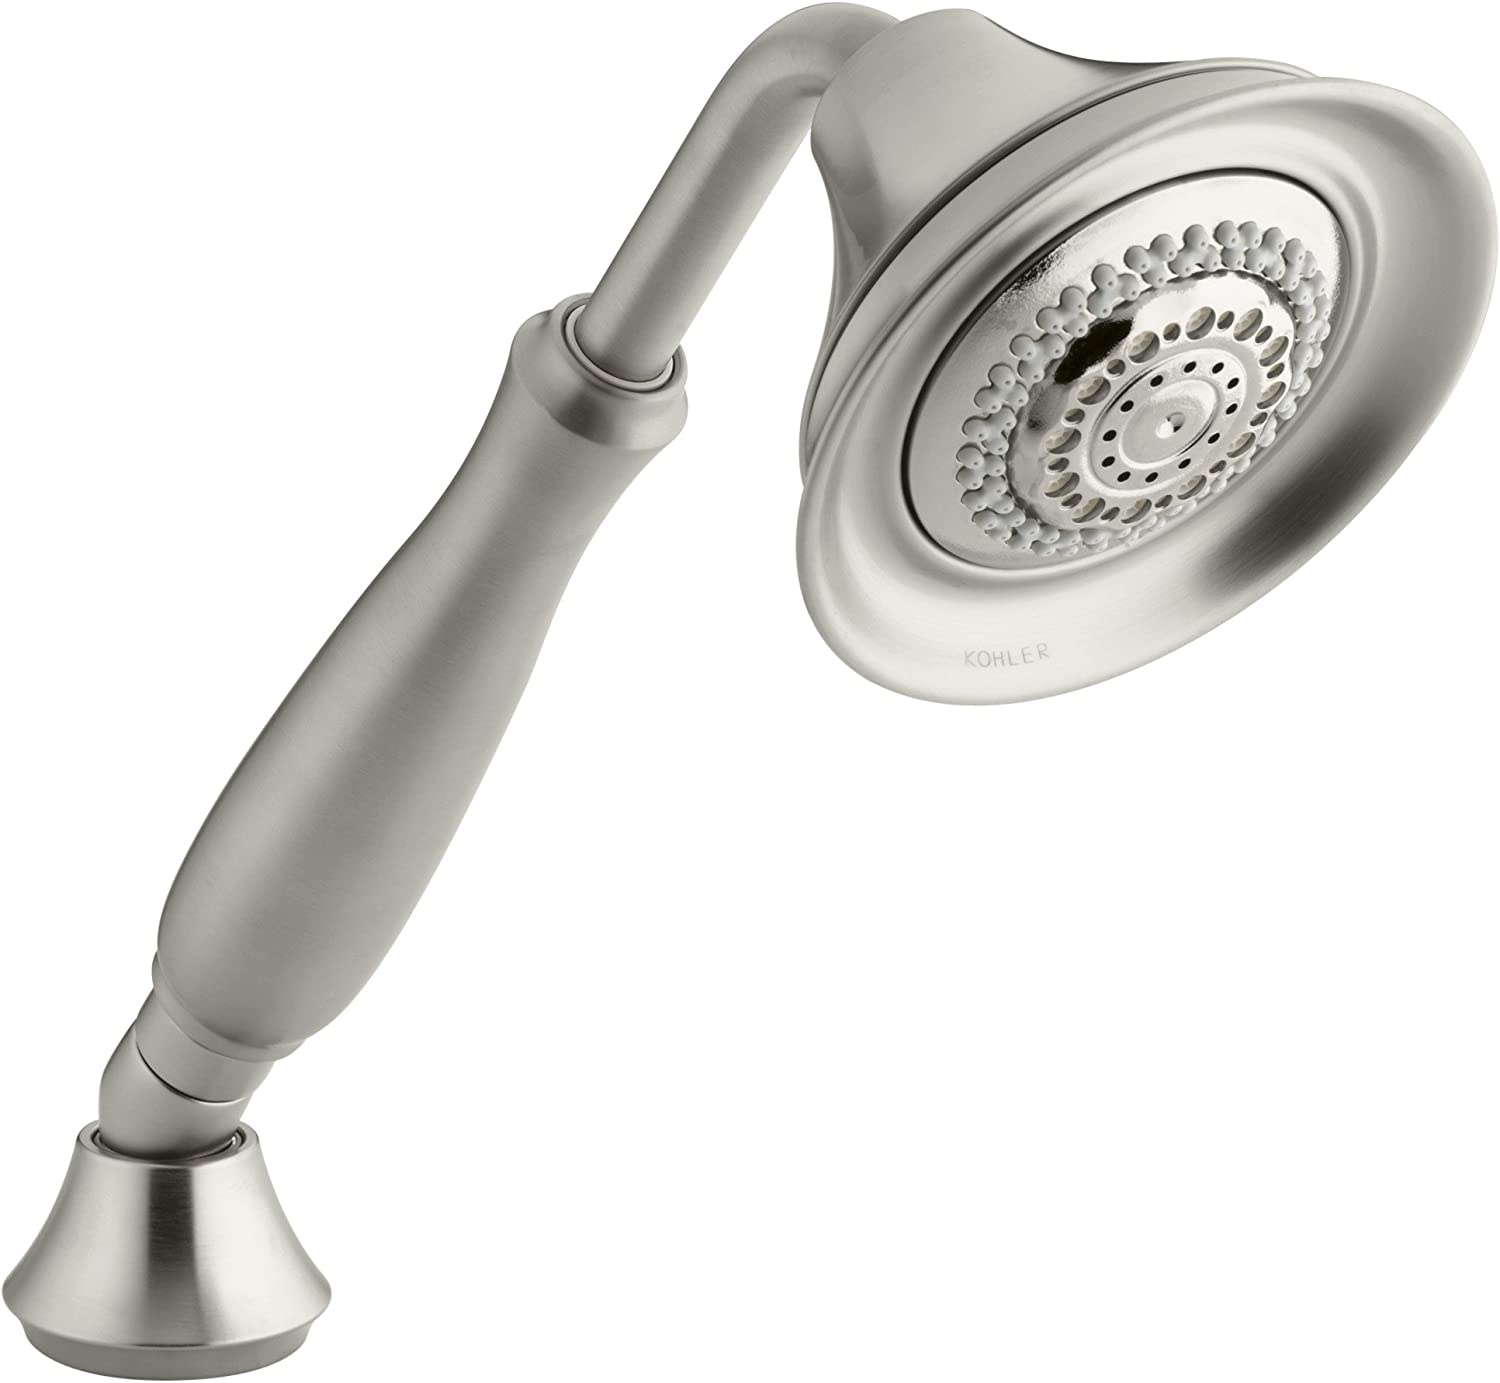 KOHLER K-10286-BN Forte Multifunction Handshower, Vibrant Brushed Nickel